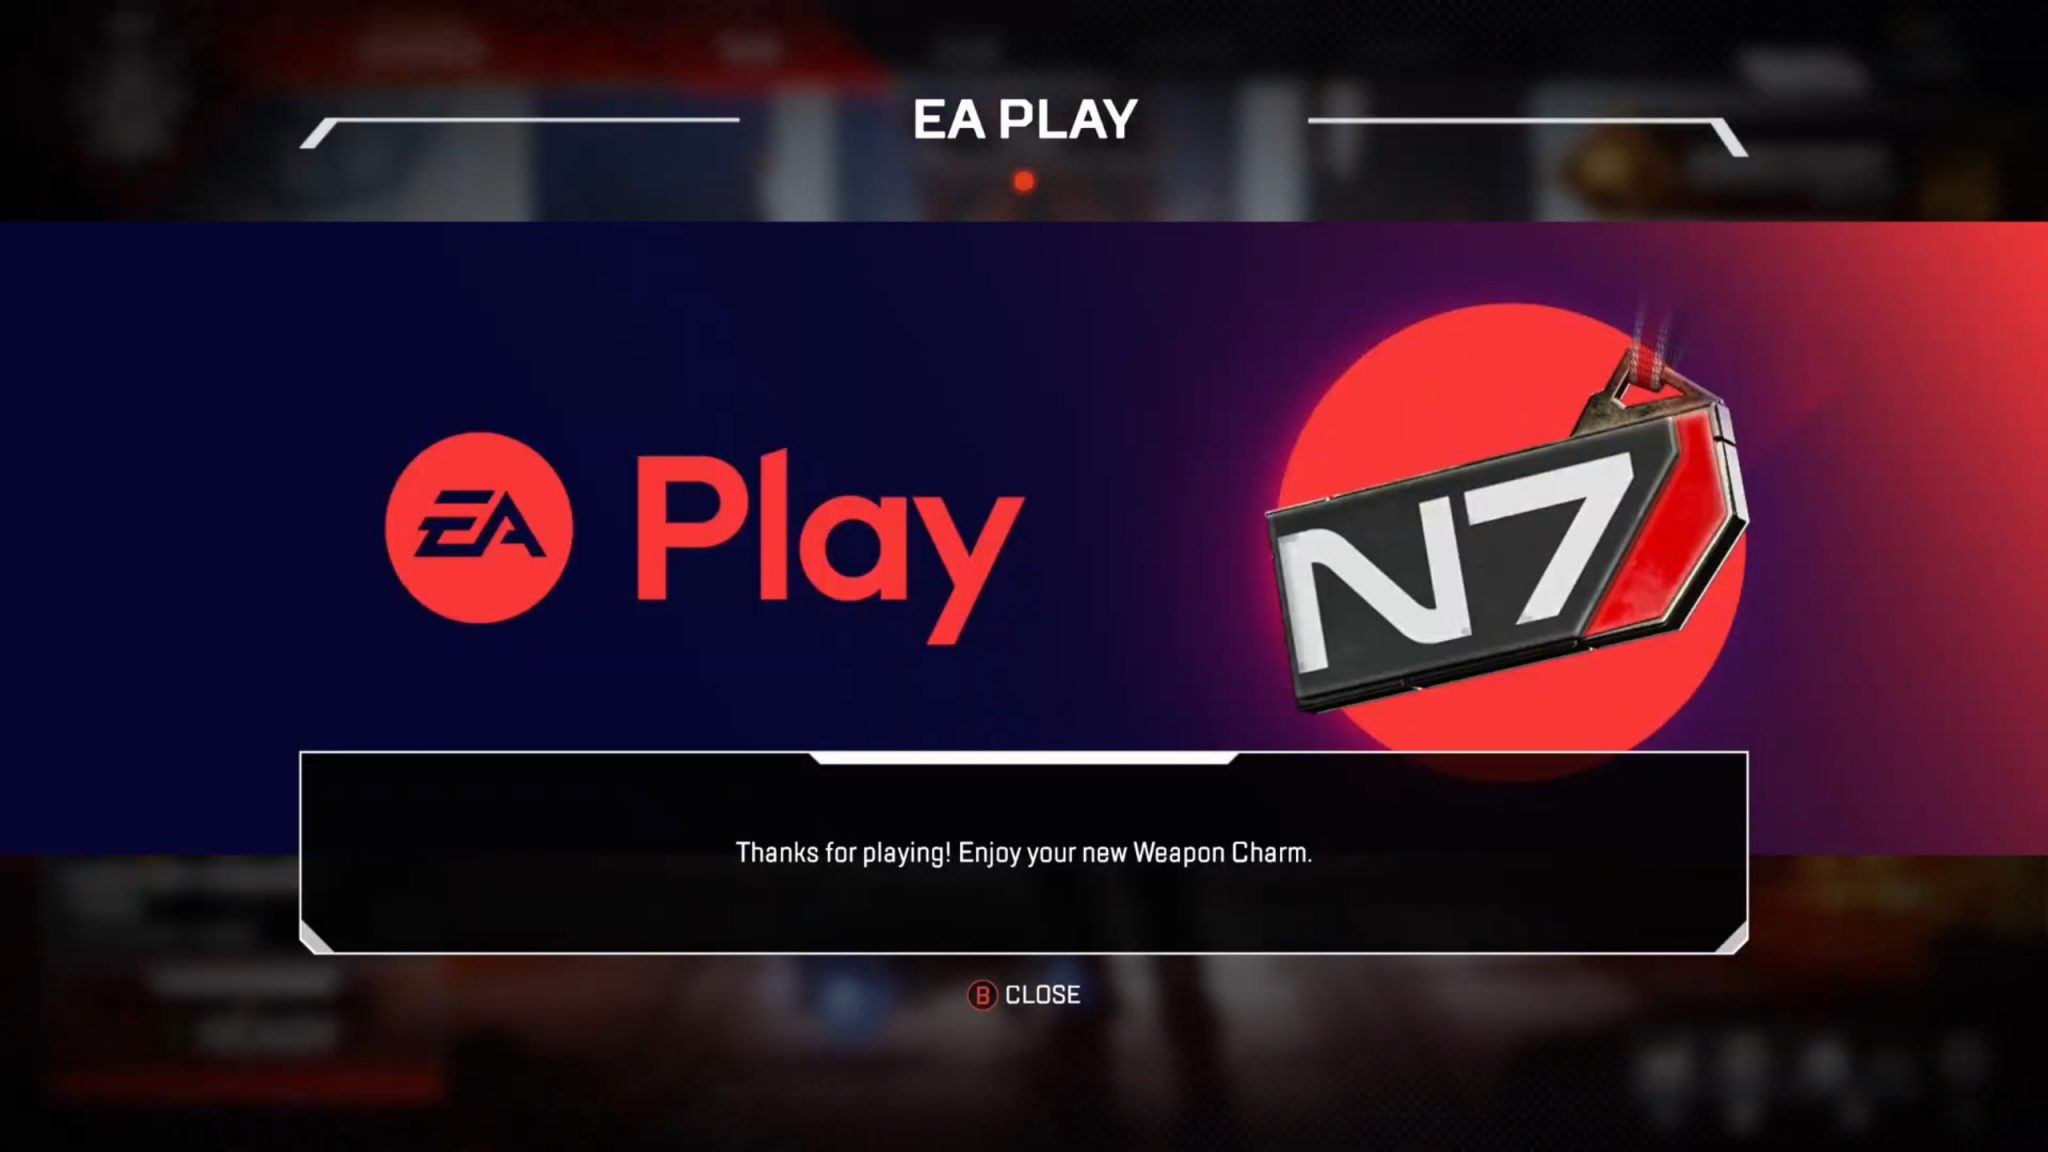 N7 Weapon charm in Apex Legends